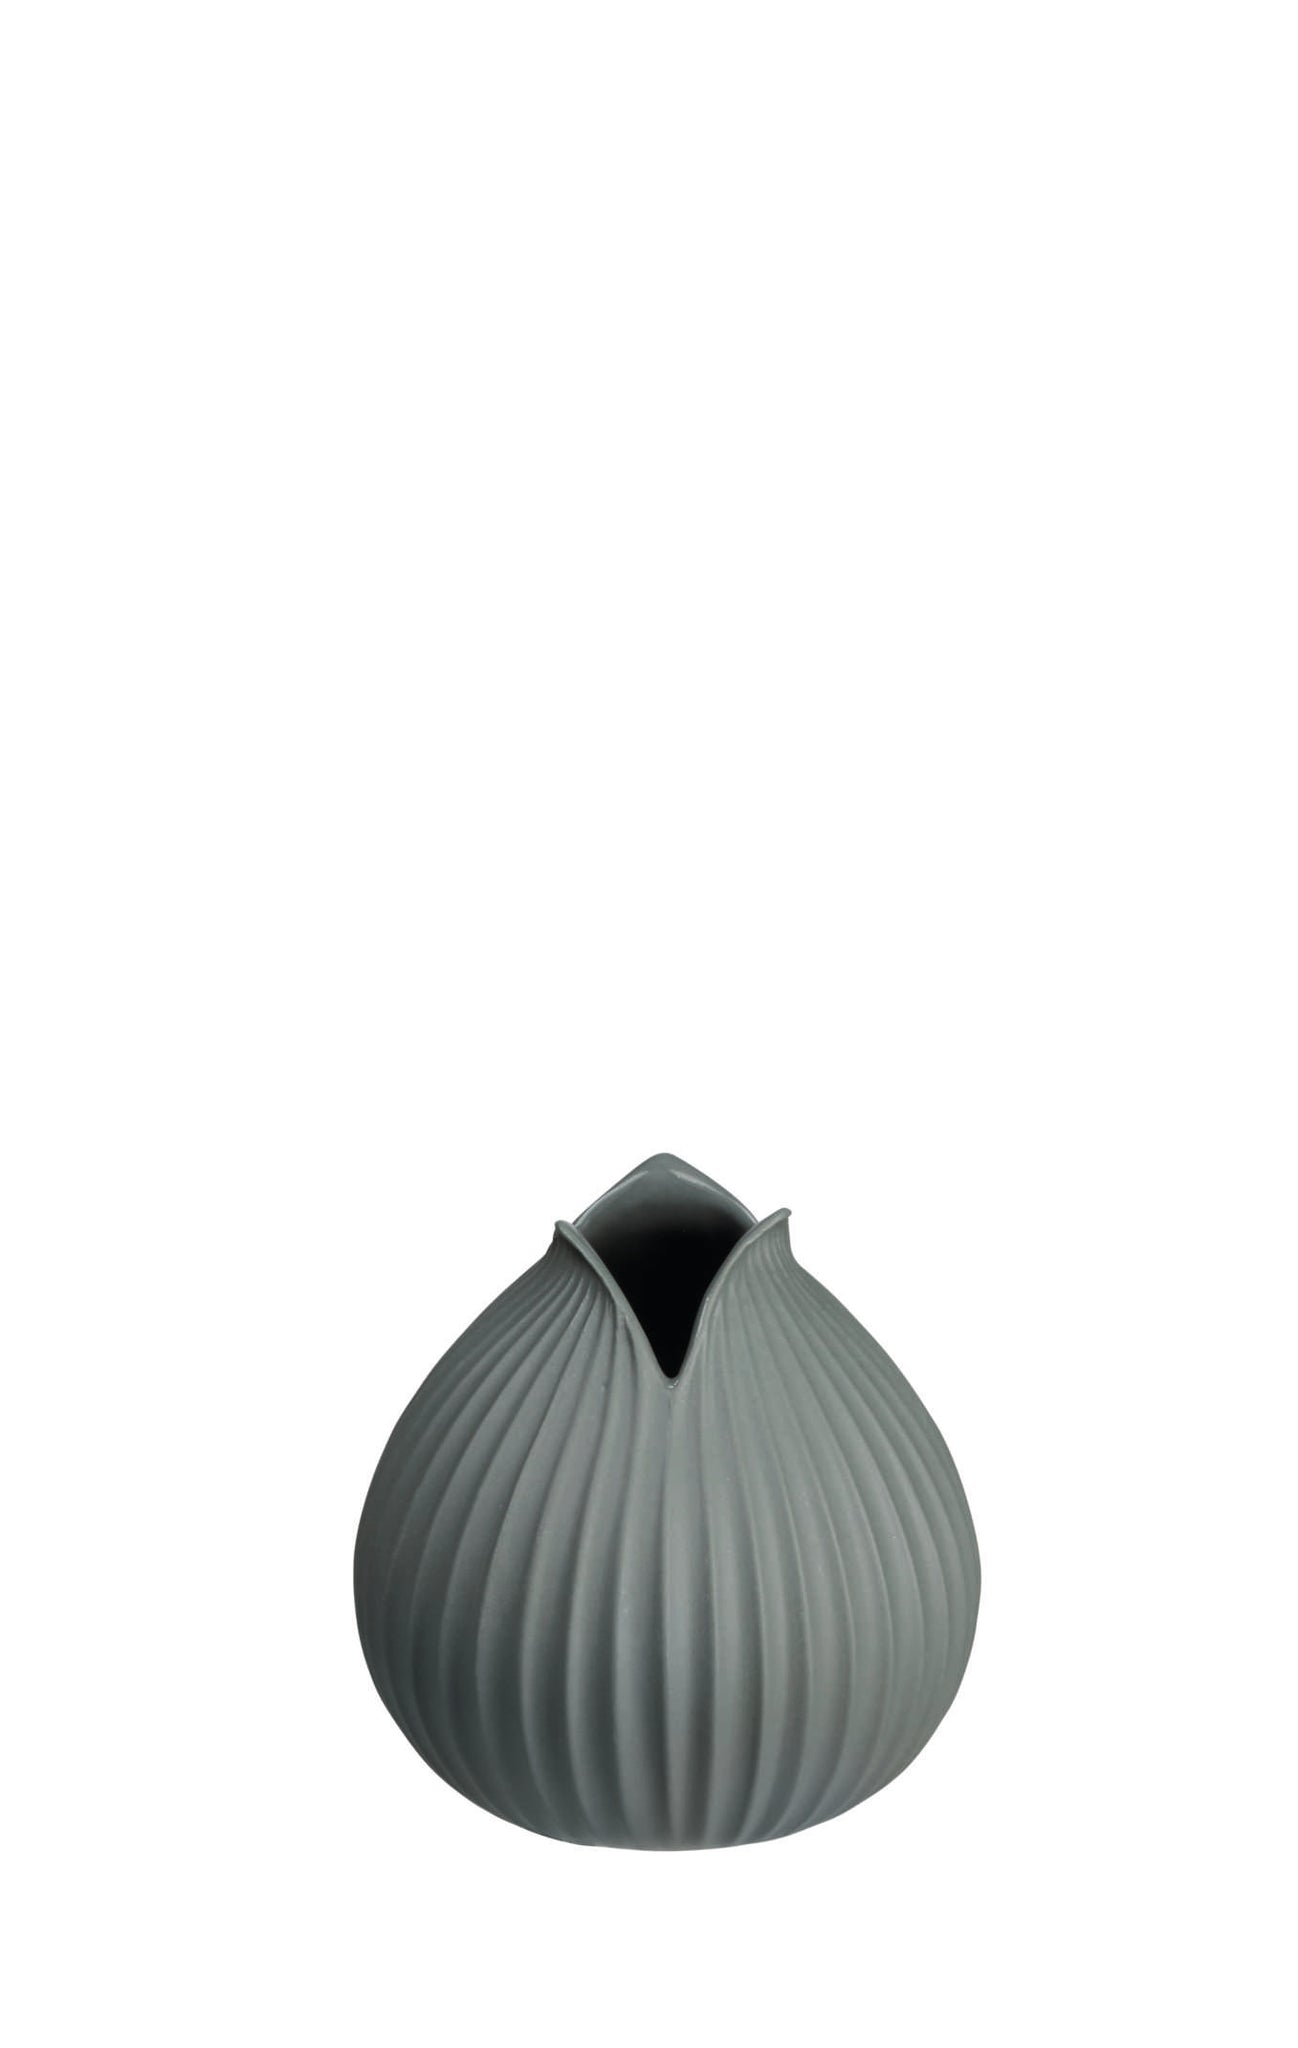 Charcoal Ribbed Tulip Vase, S